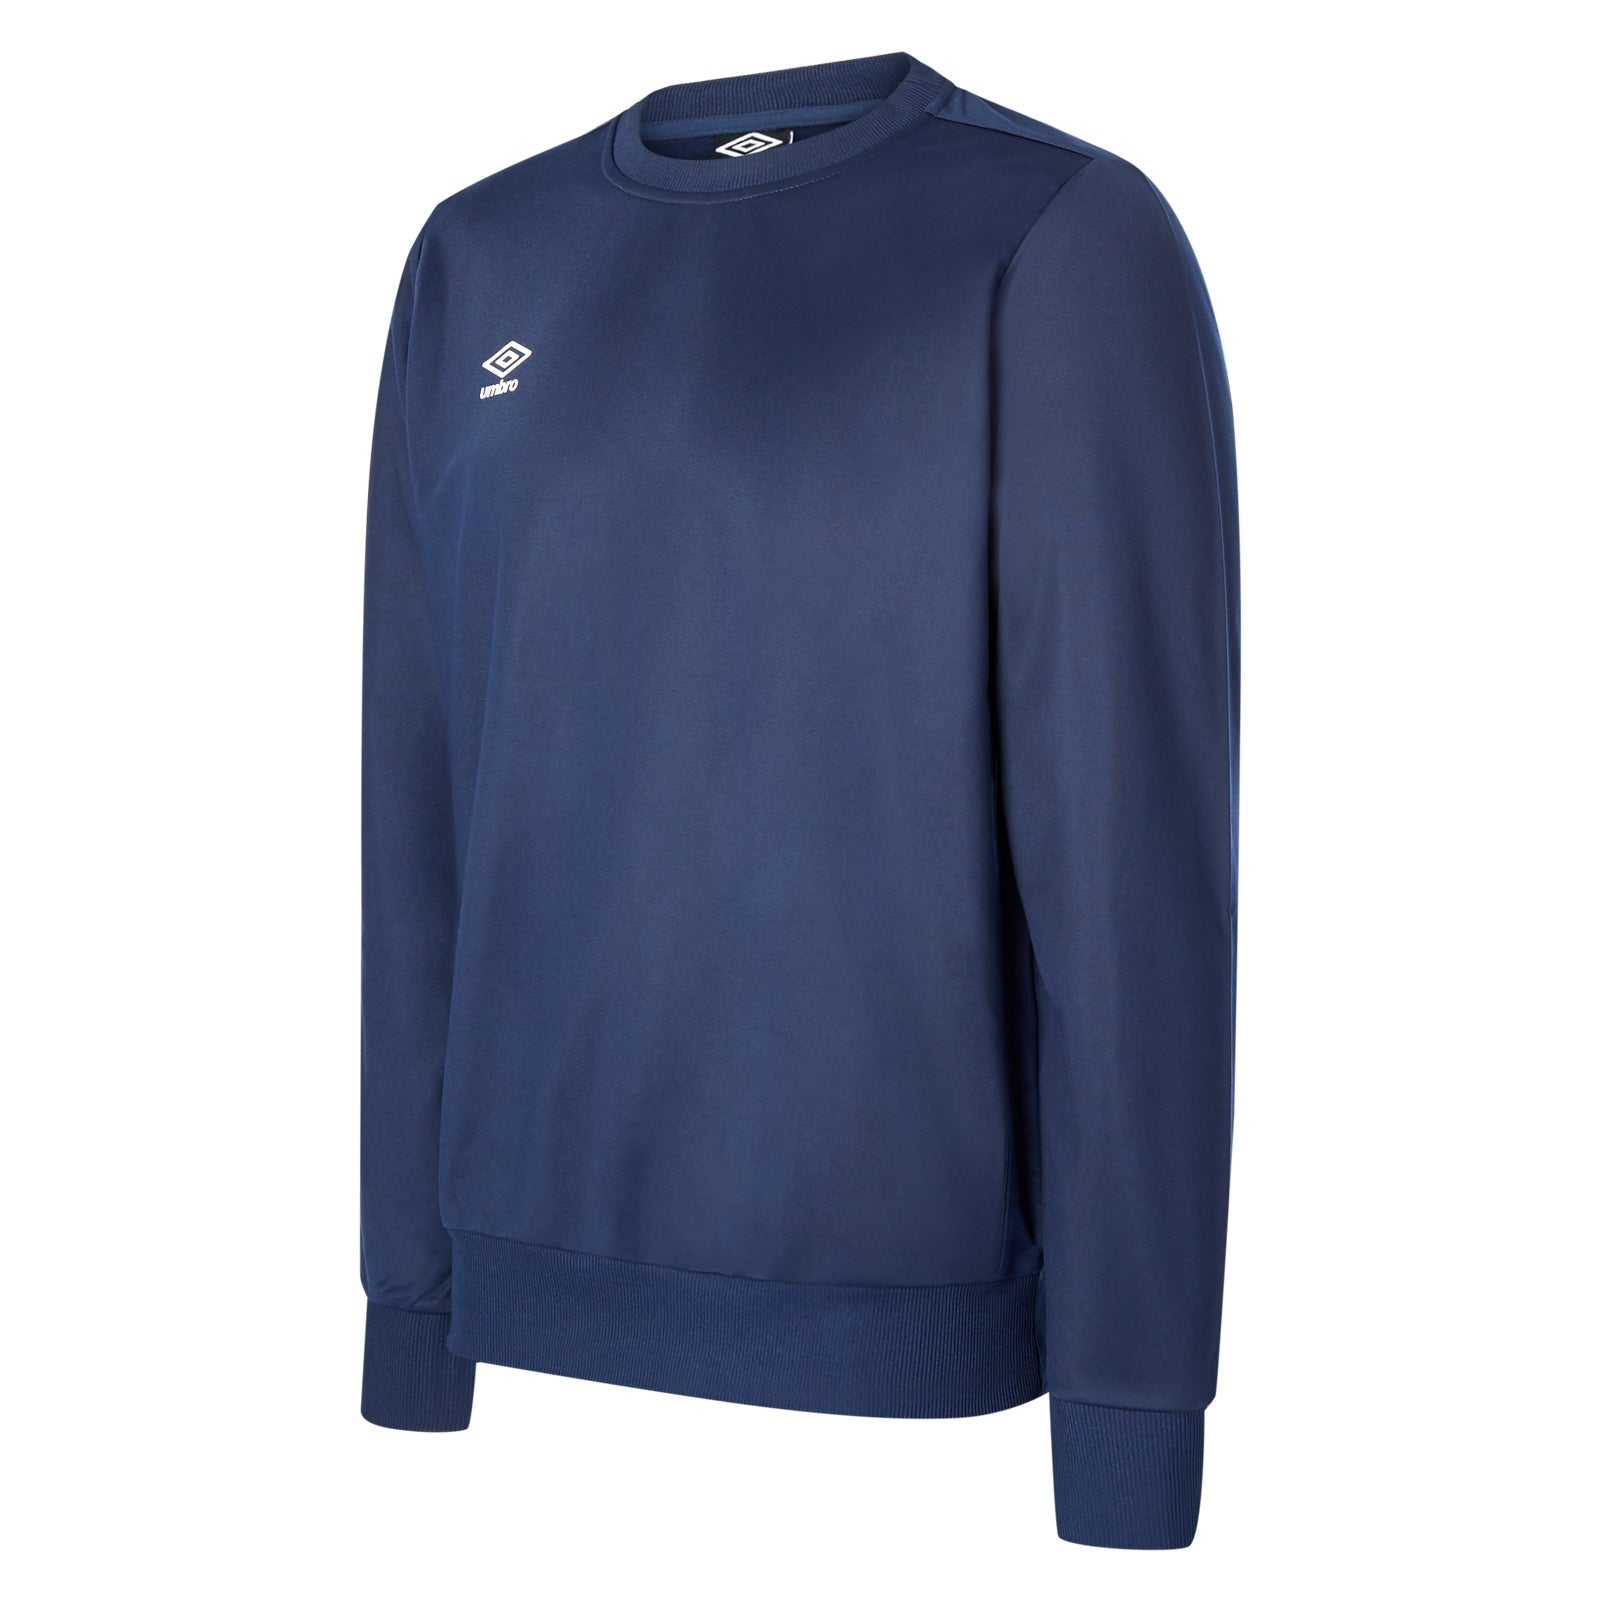 Umbro club Essential poly sweat in dark navy with white Diamond logo